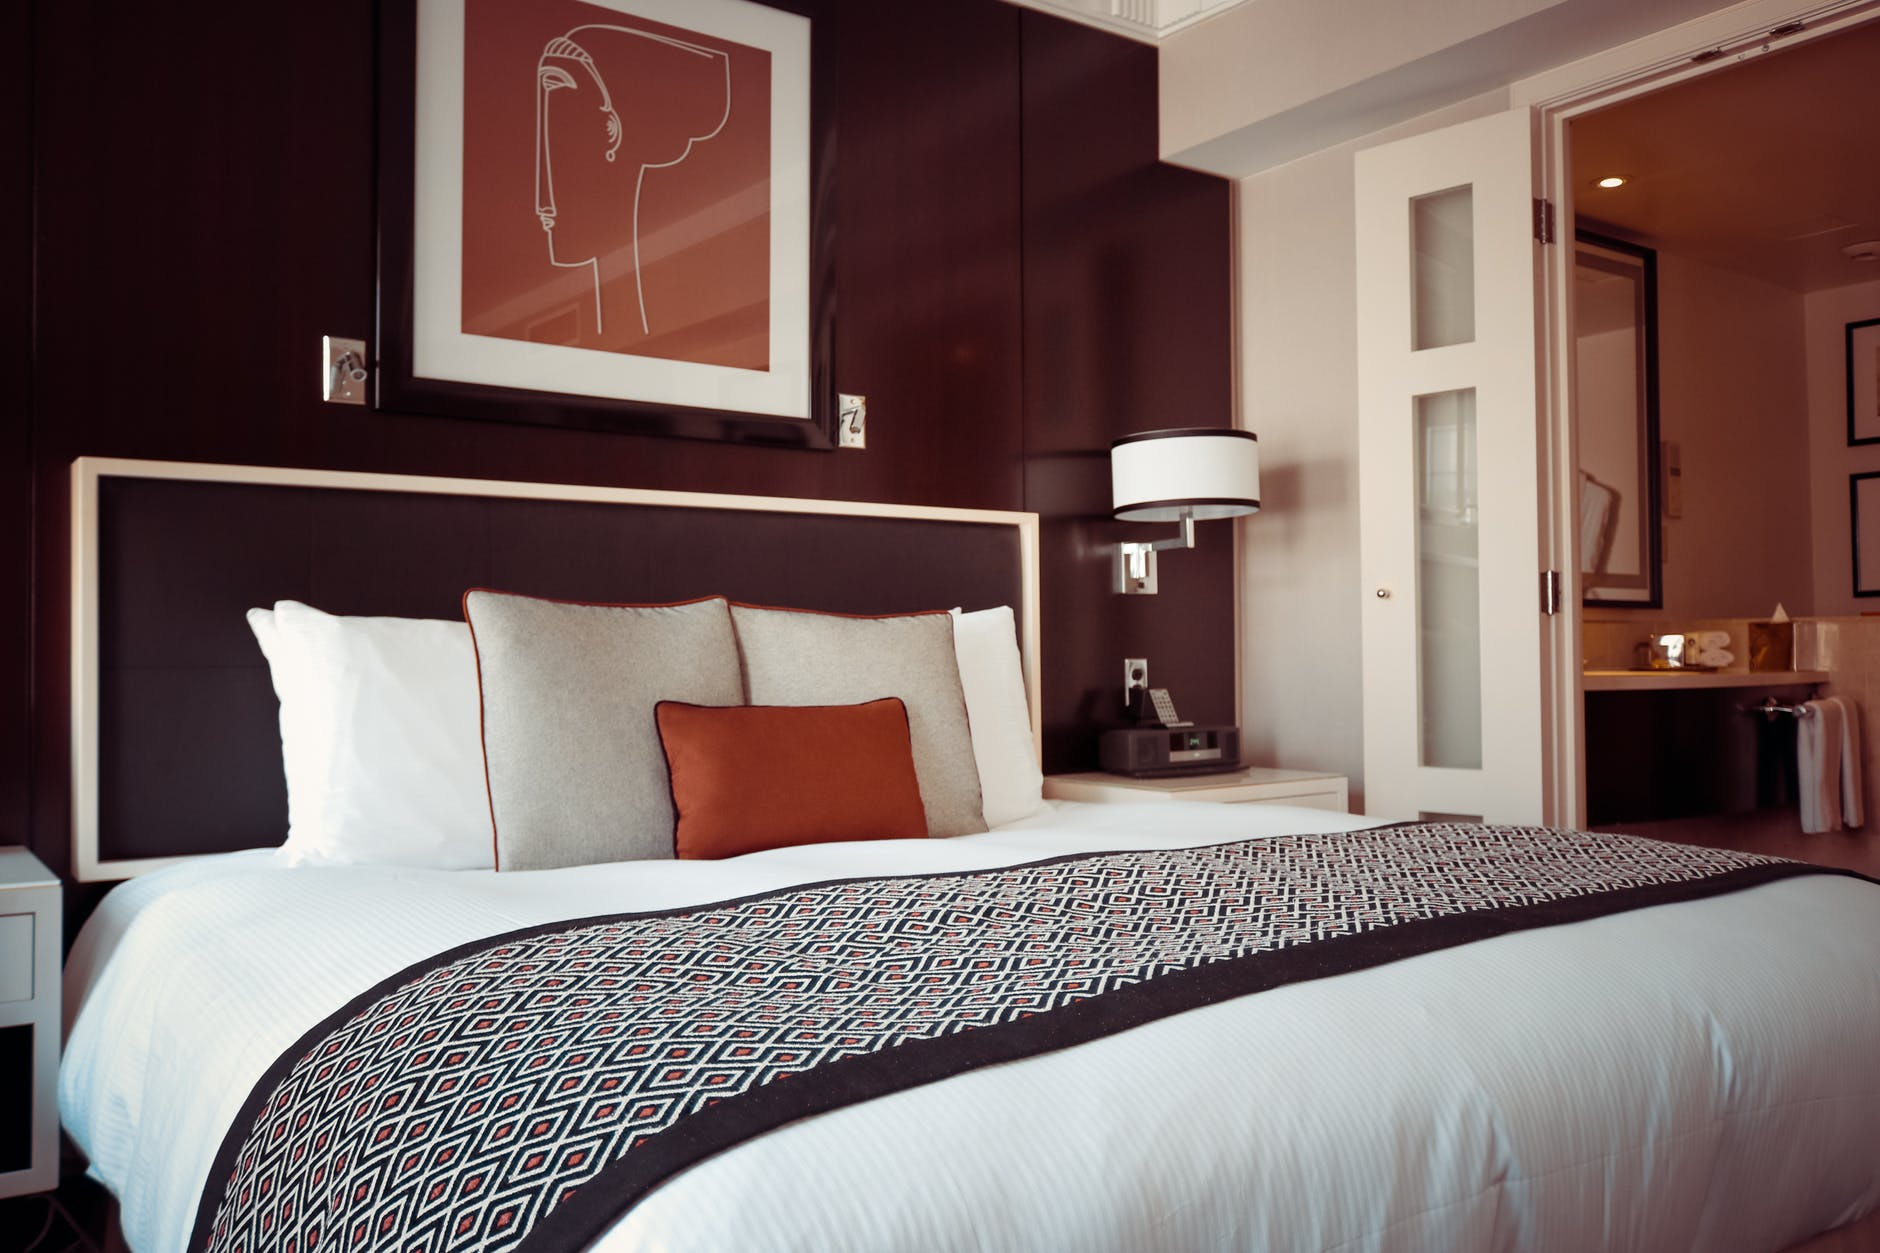 Tips on How to Spice Up Things In Your Bedroom